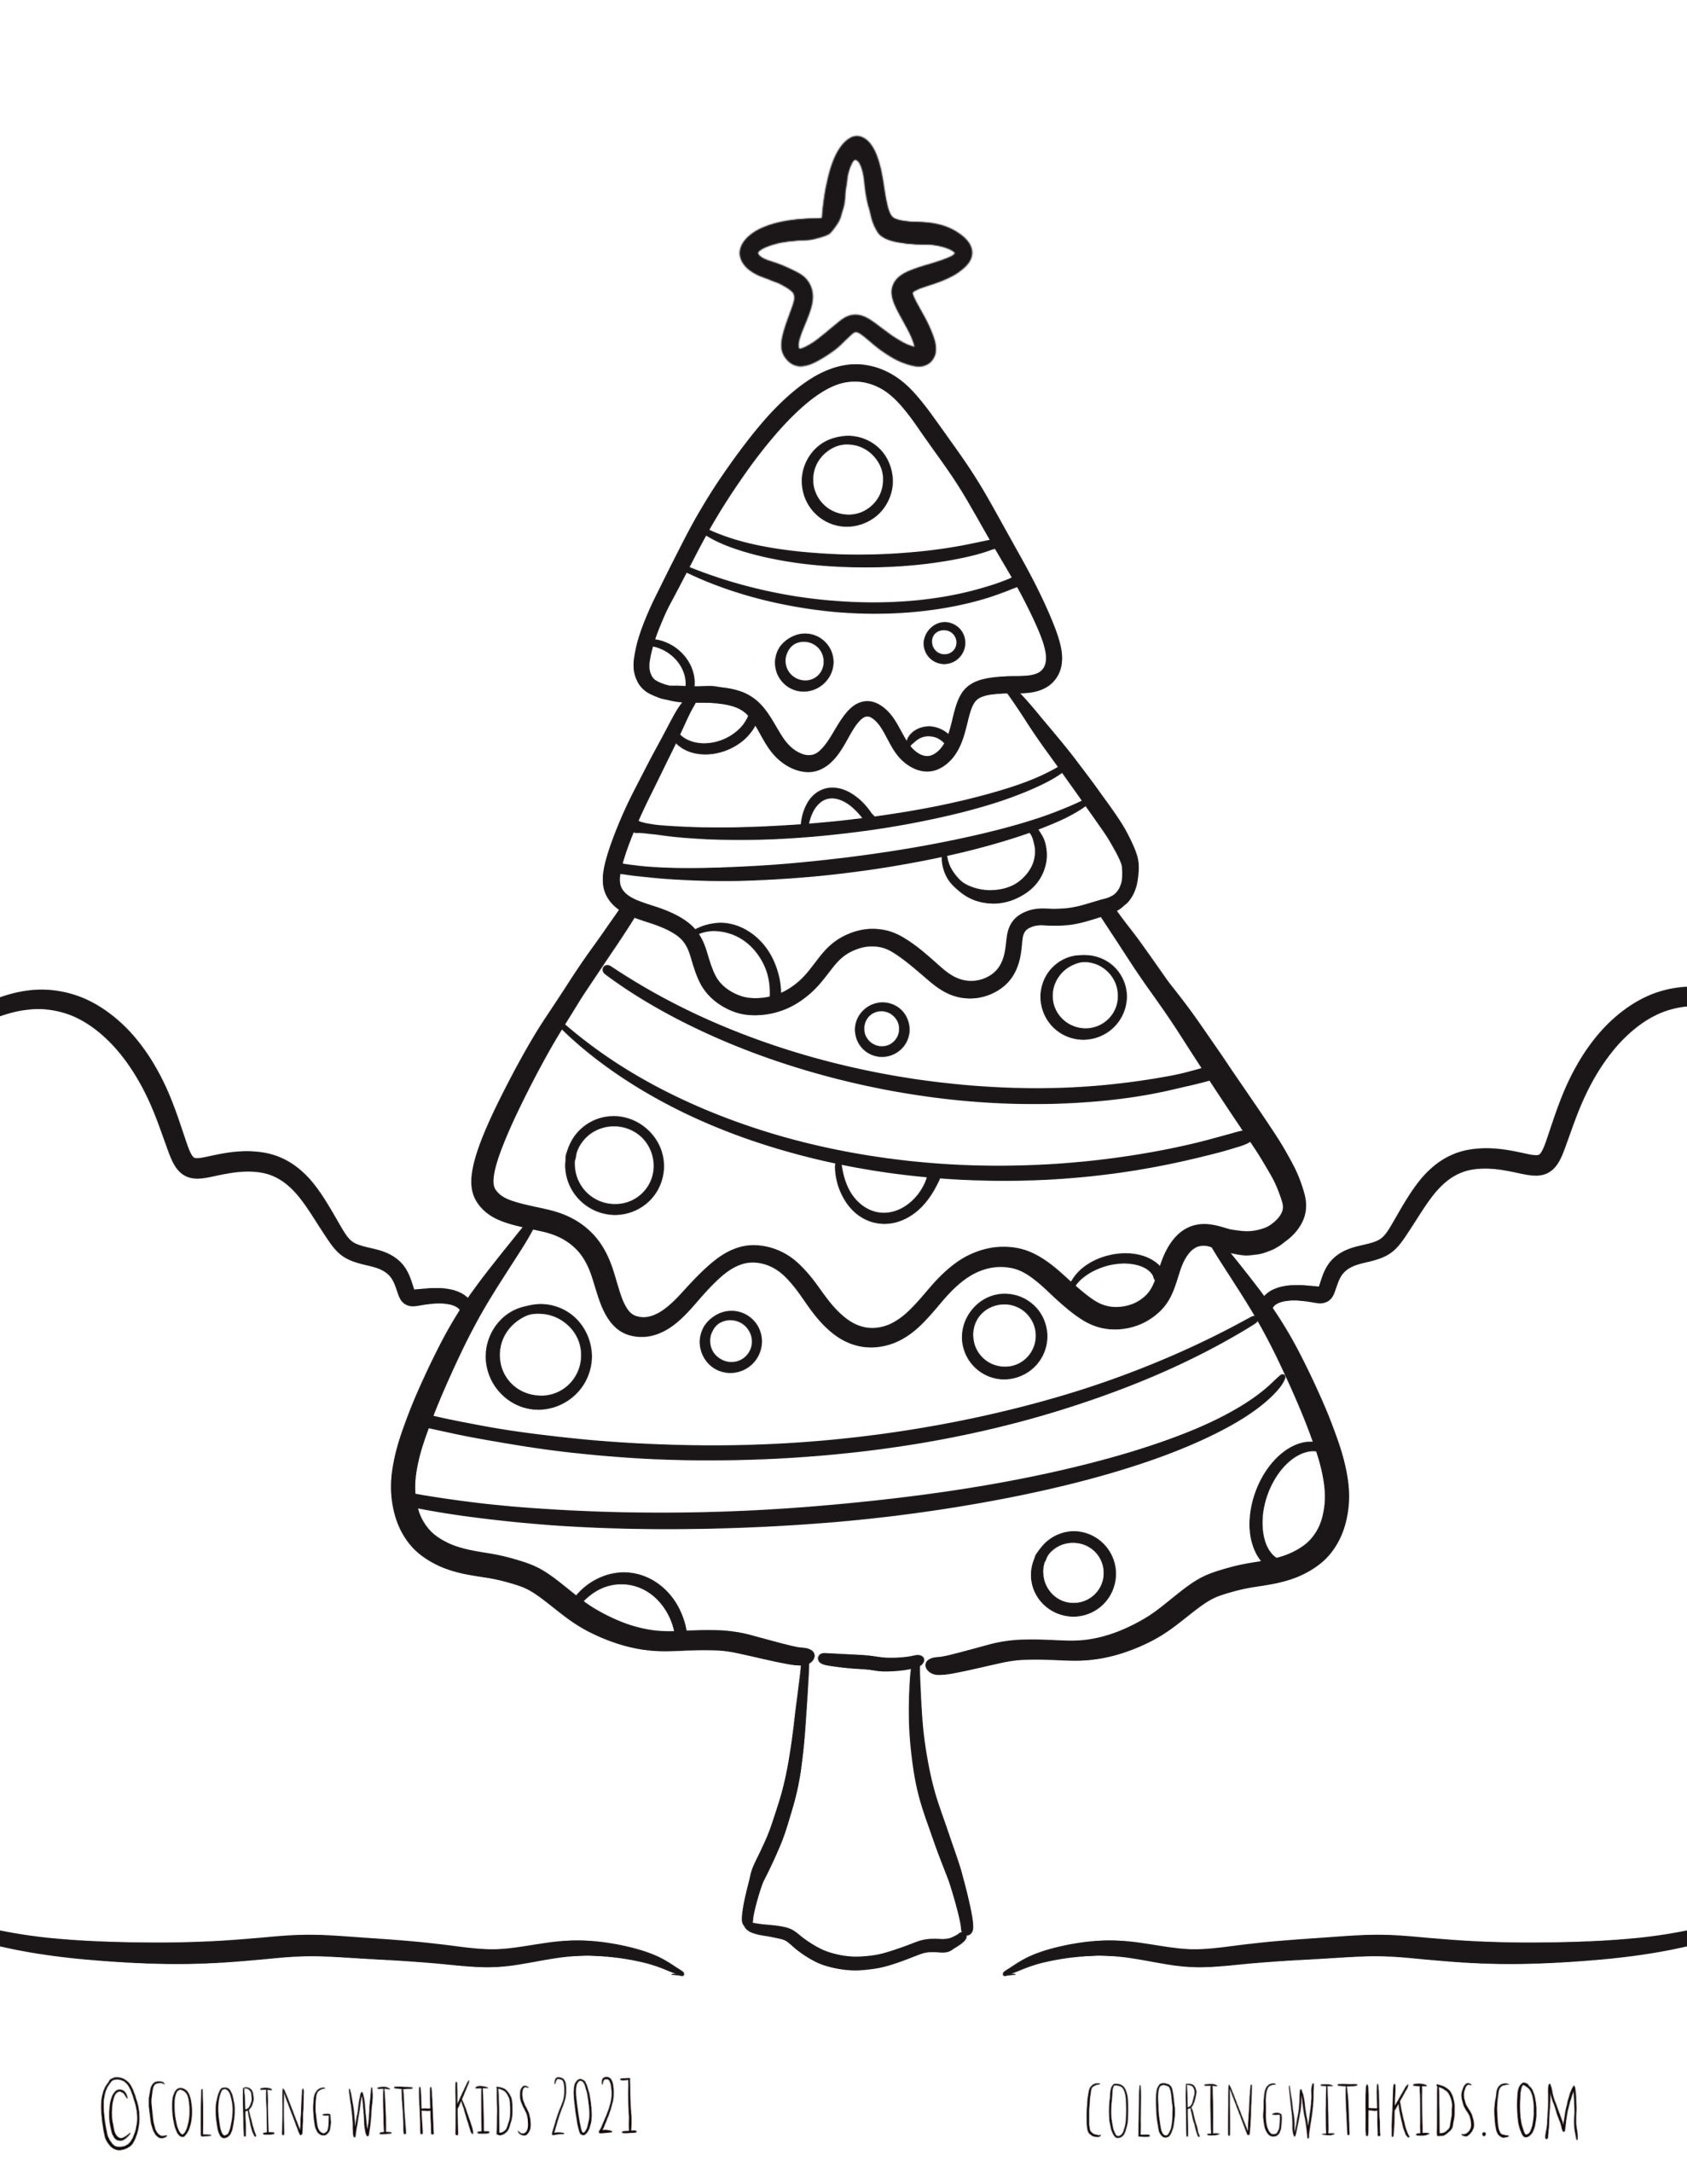 Star on Christmas Tree Coloring Page